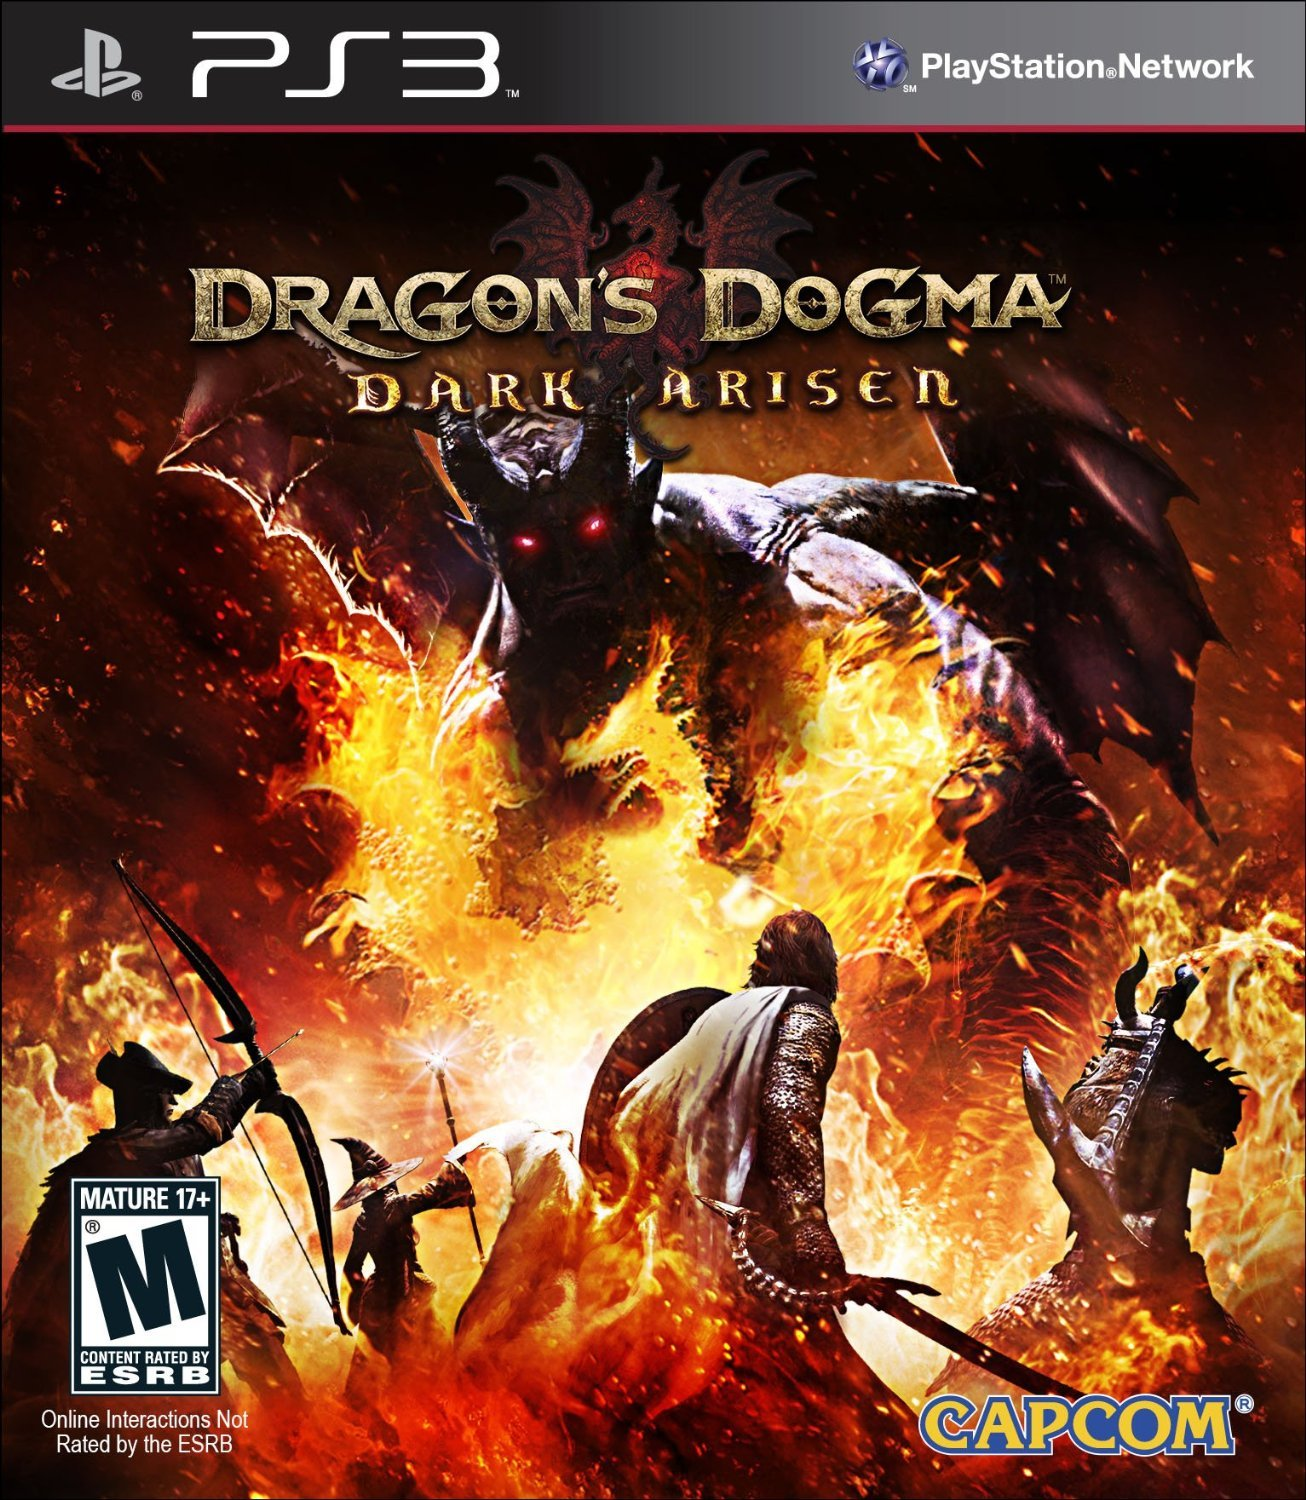 Dragons Dogma Dark Arisen 2016 2016 81HrLdJMl+L._SL150